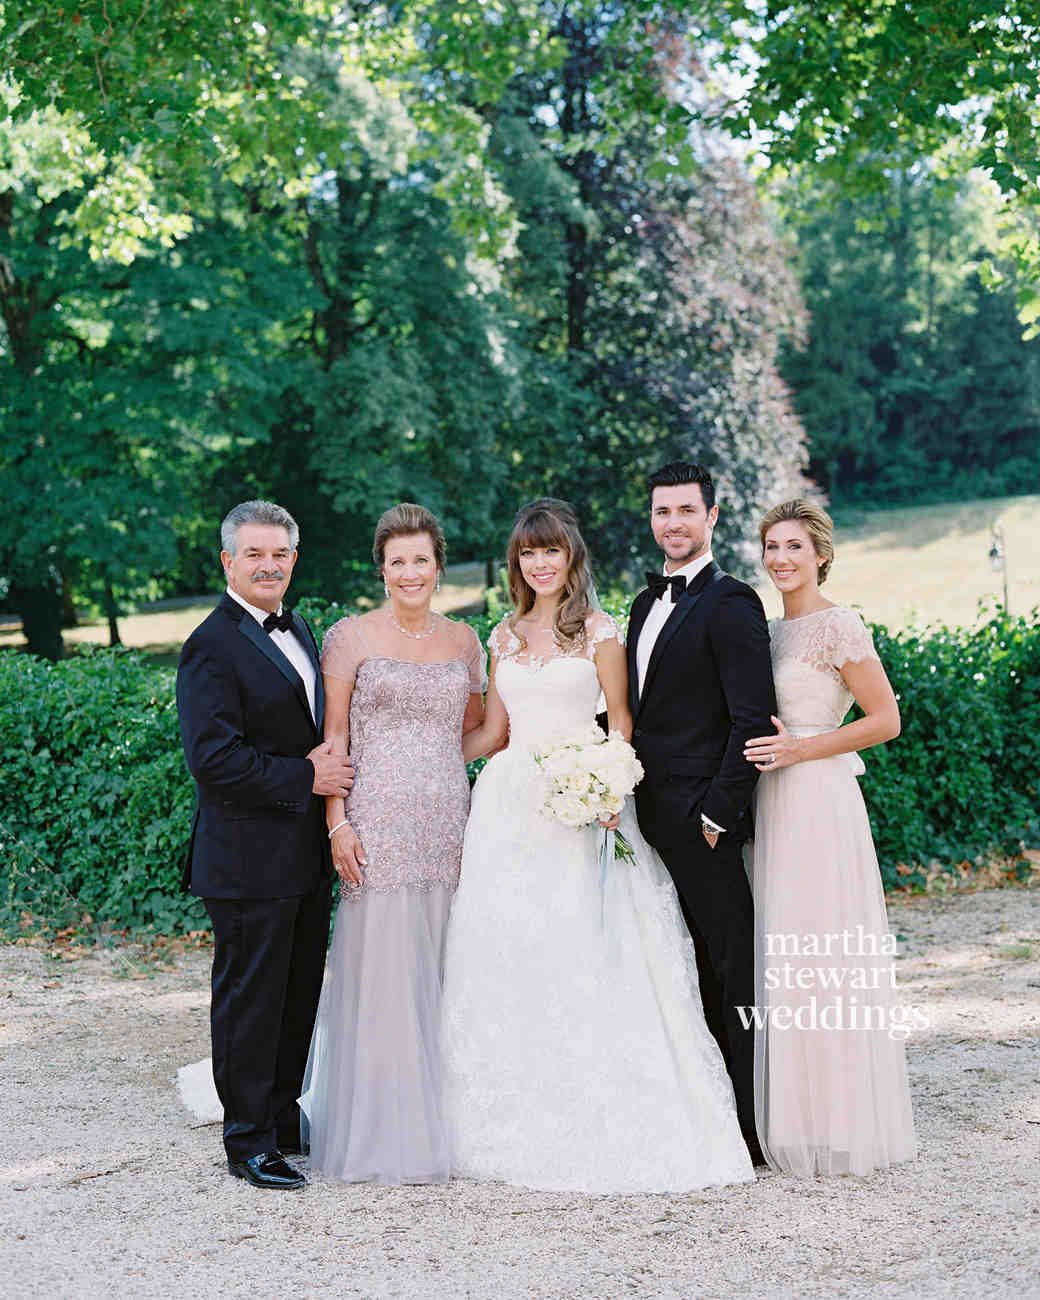 jenny-freddie-wedding-france-548-d112242-watermarked-1215.jpg